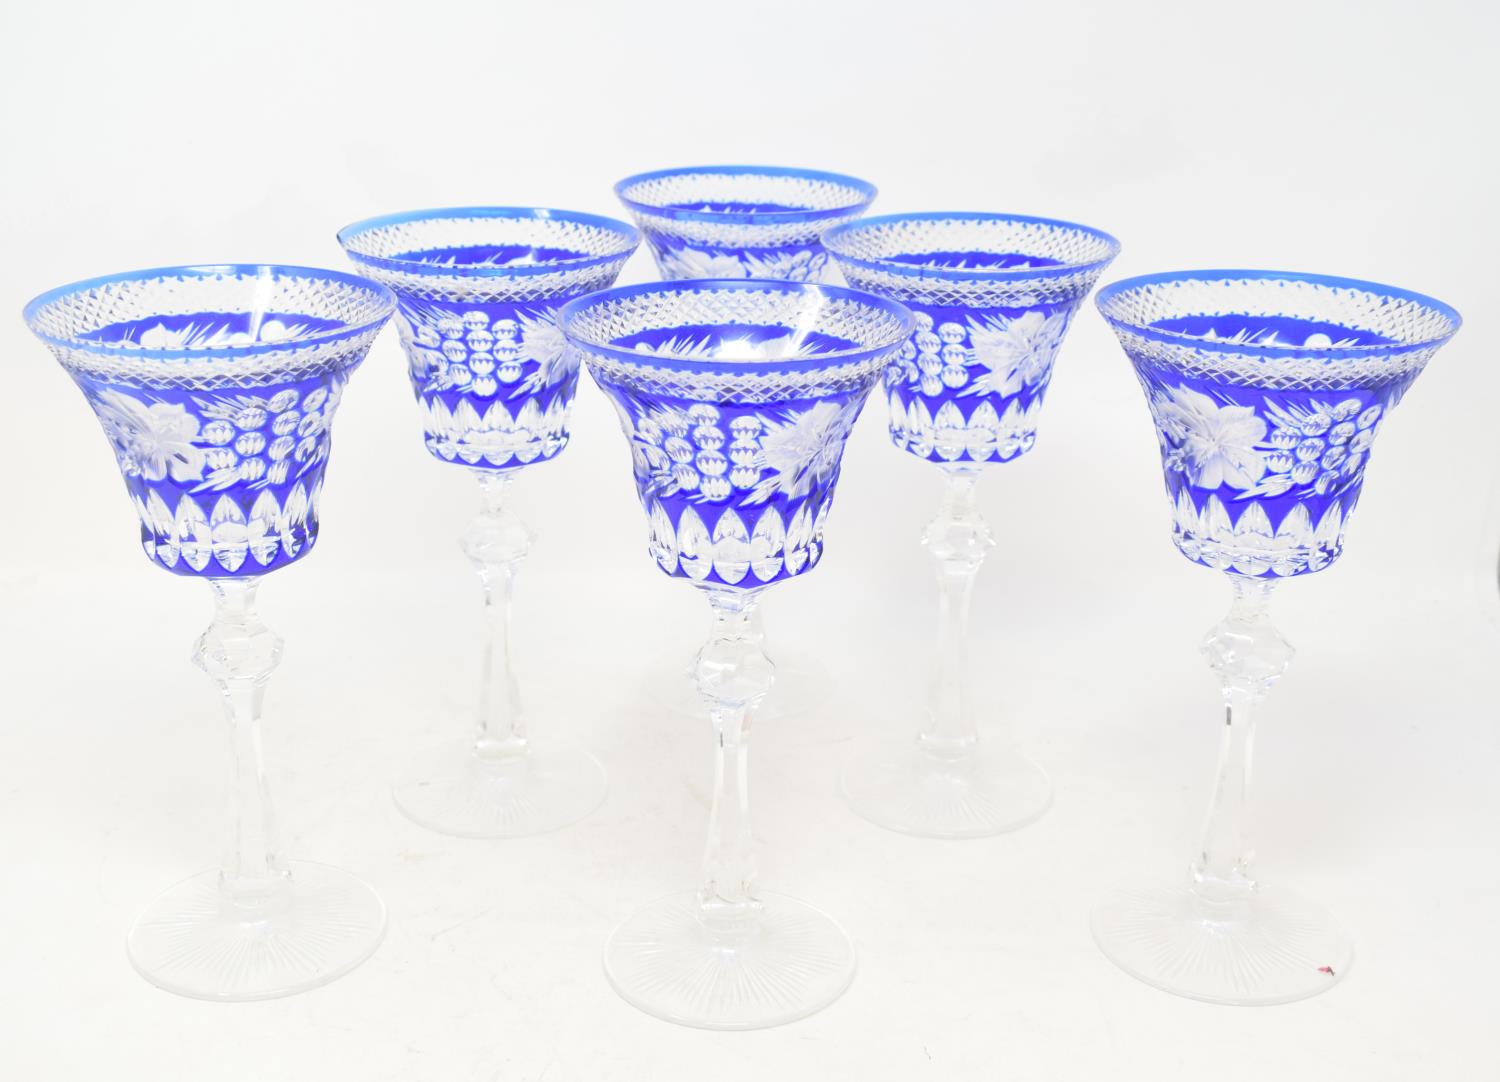 Lot 18 - A set of six hock glasses, with etched decoration, one chipped, 21.5 cm high, a Waterford cut